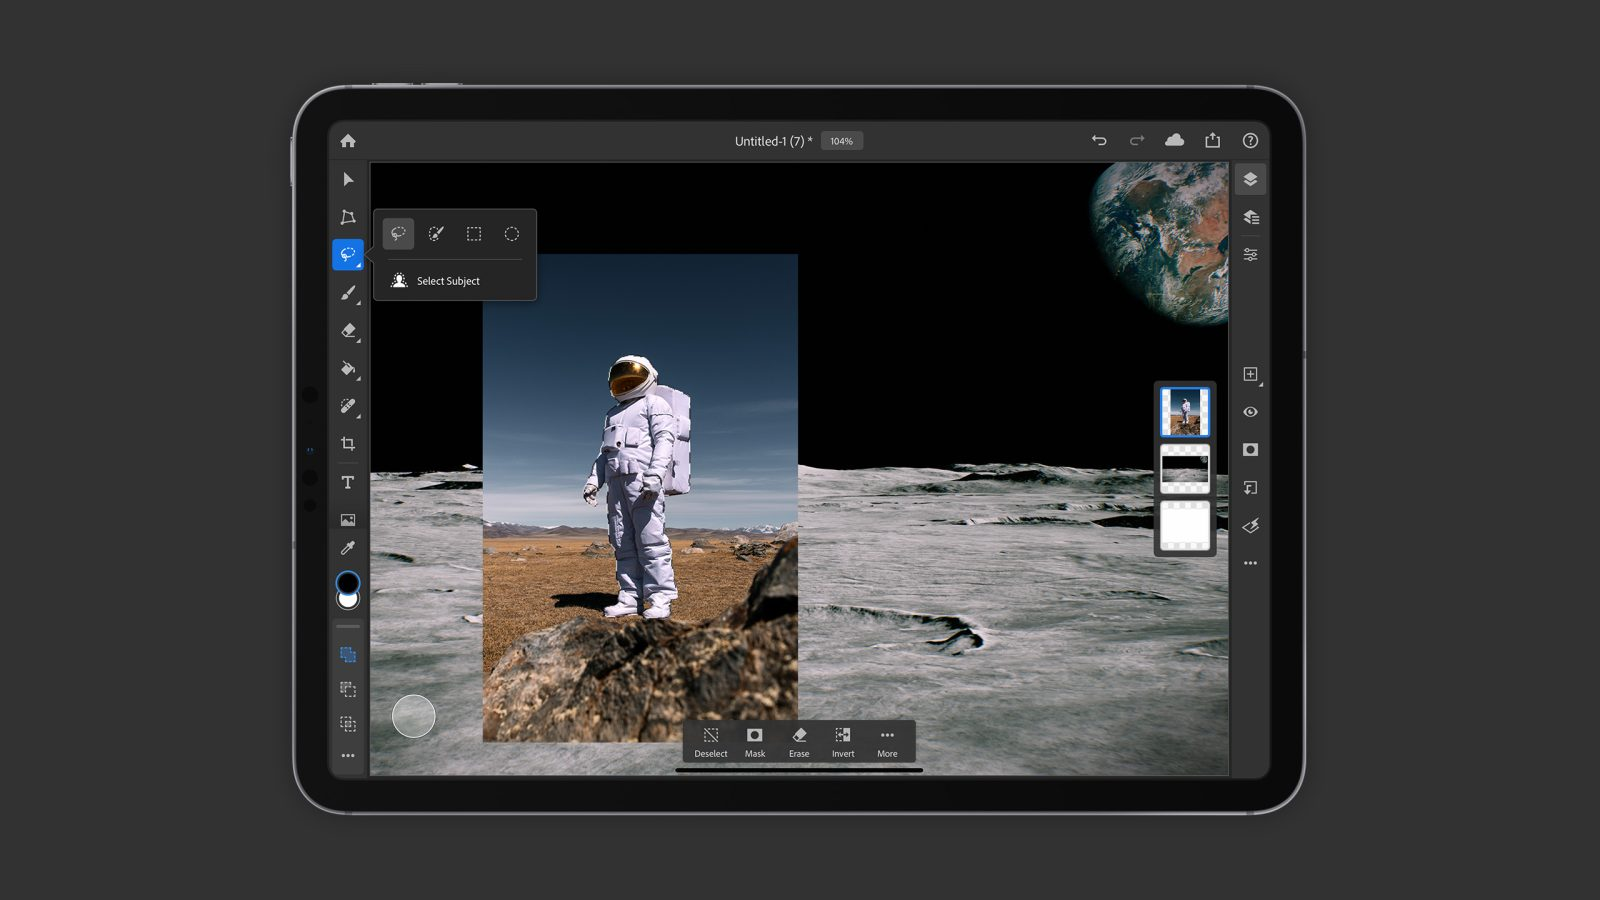 Adobe brings promised Select Subject feature to Photoshop on iPad